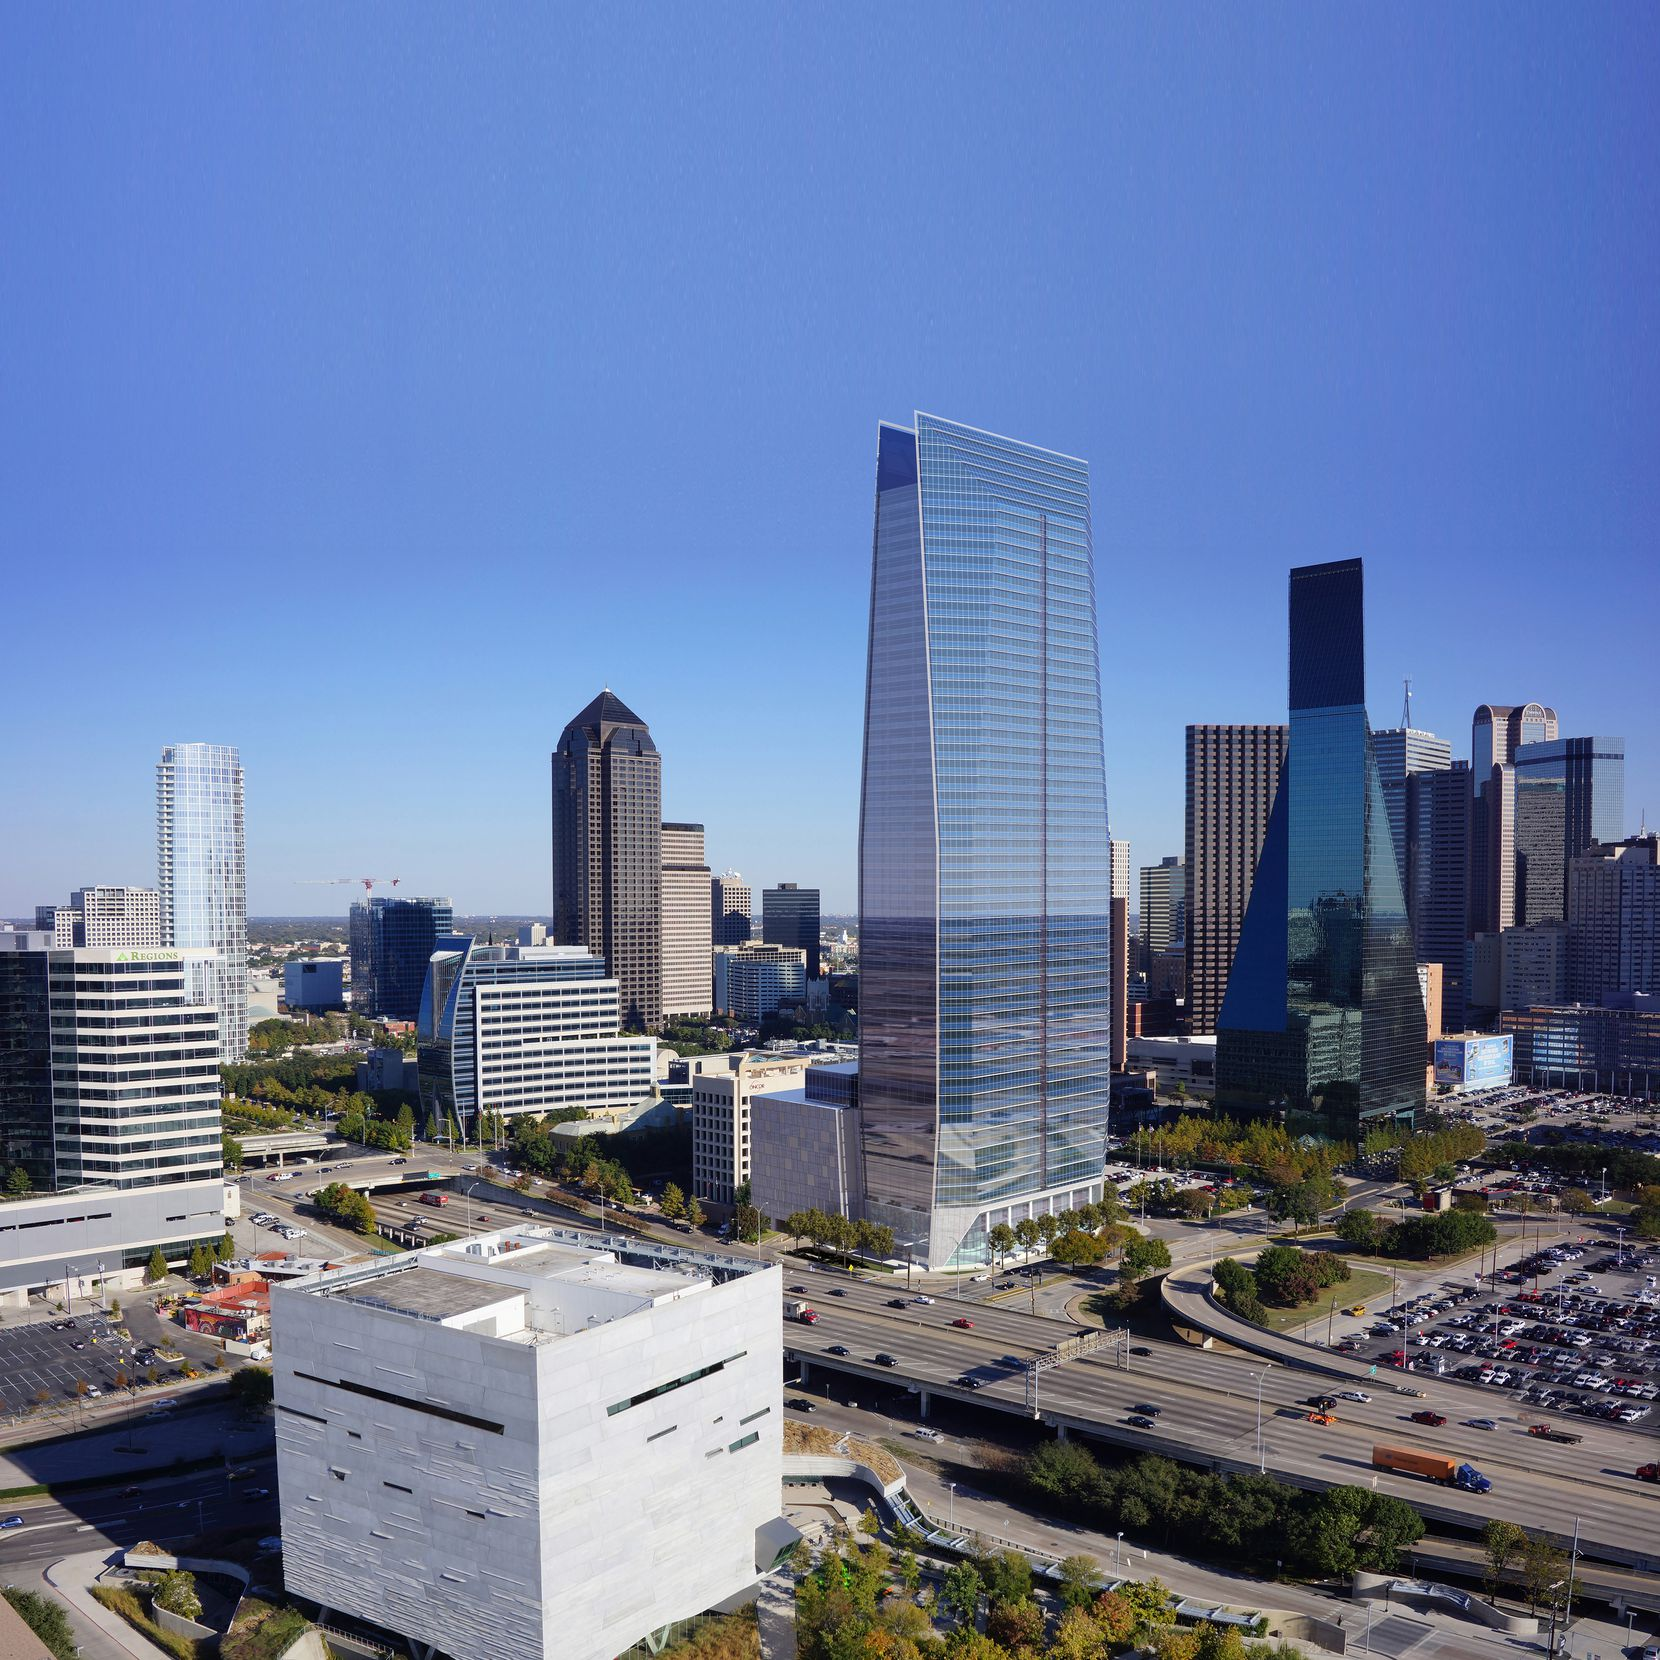 Ross Perot Jr.'s HIllwood development company has done design concepts for a new skyscraper shown in this rendering.